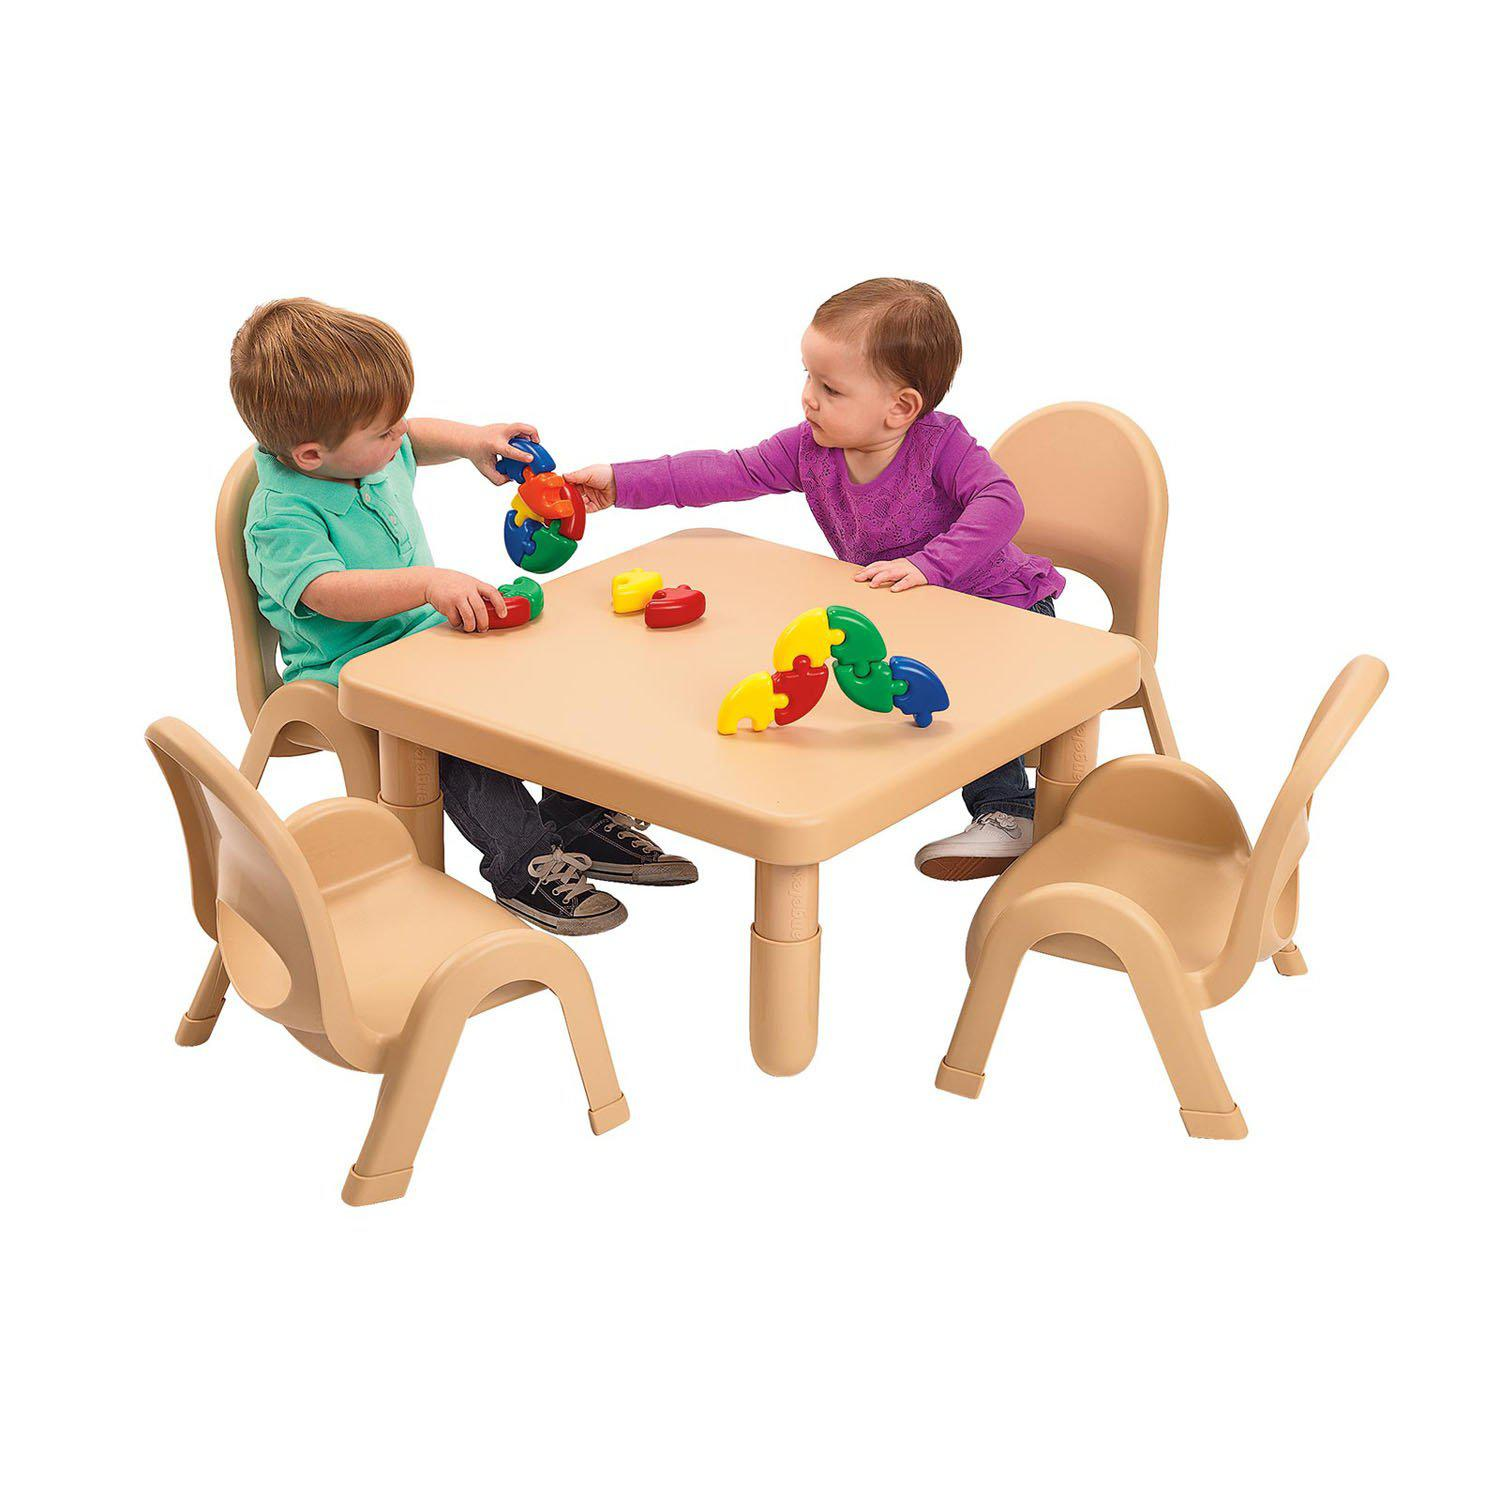 "Toddler MyValue™ Table and Chair Set - 28"" Square x 12""-High Natural Tan Table with 4 Matching 5""-High Chairs"